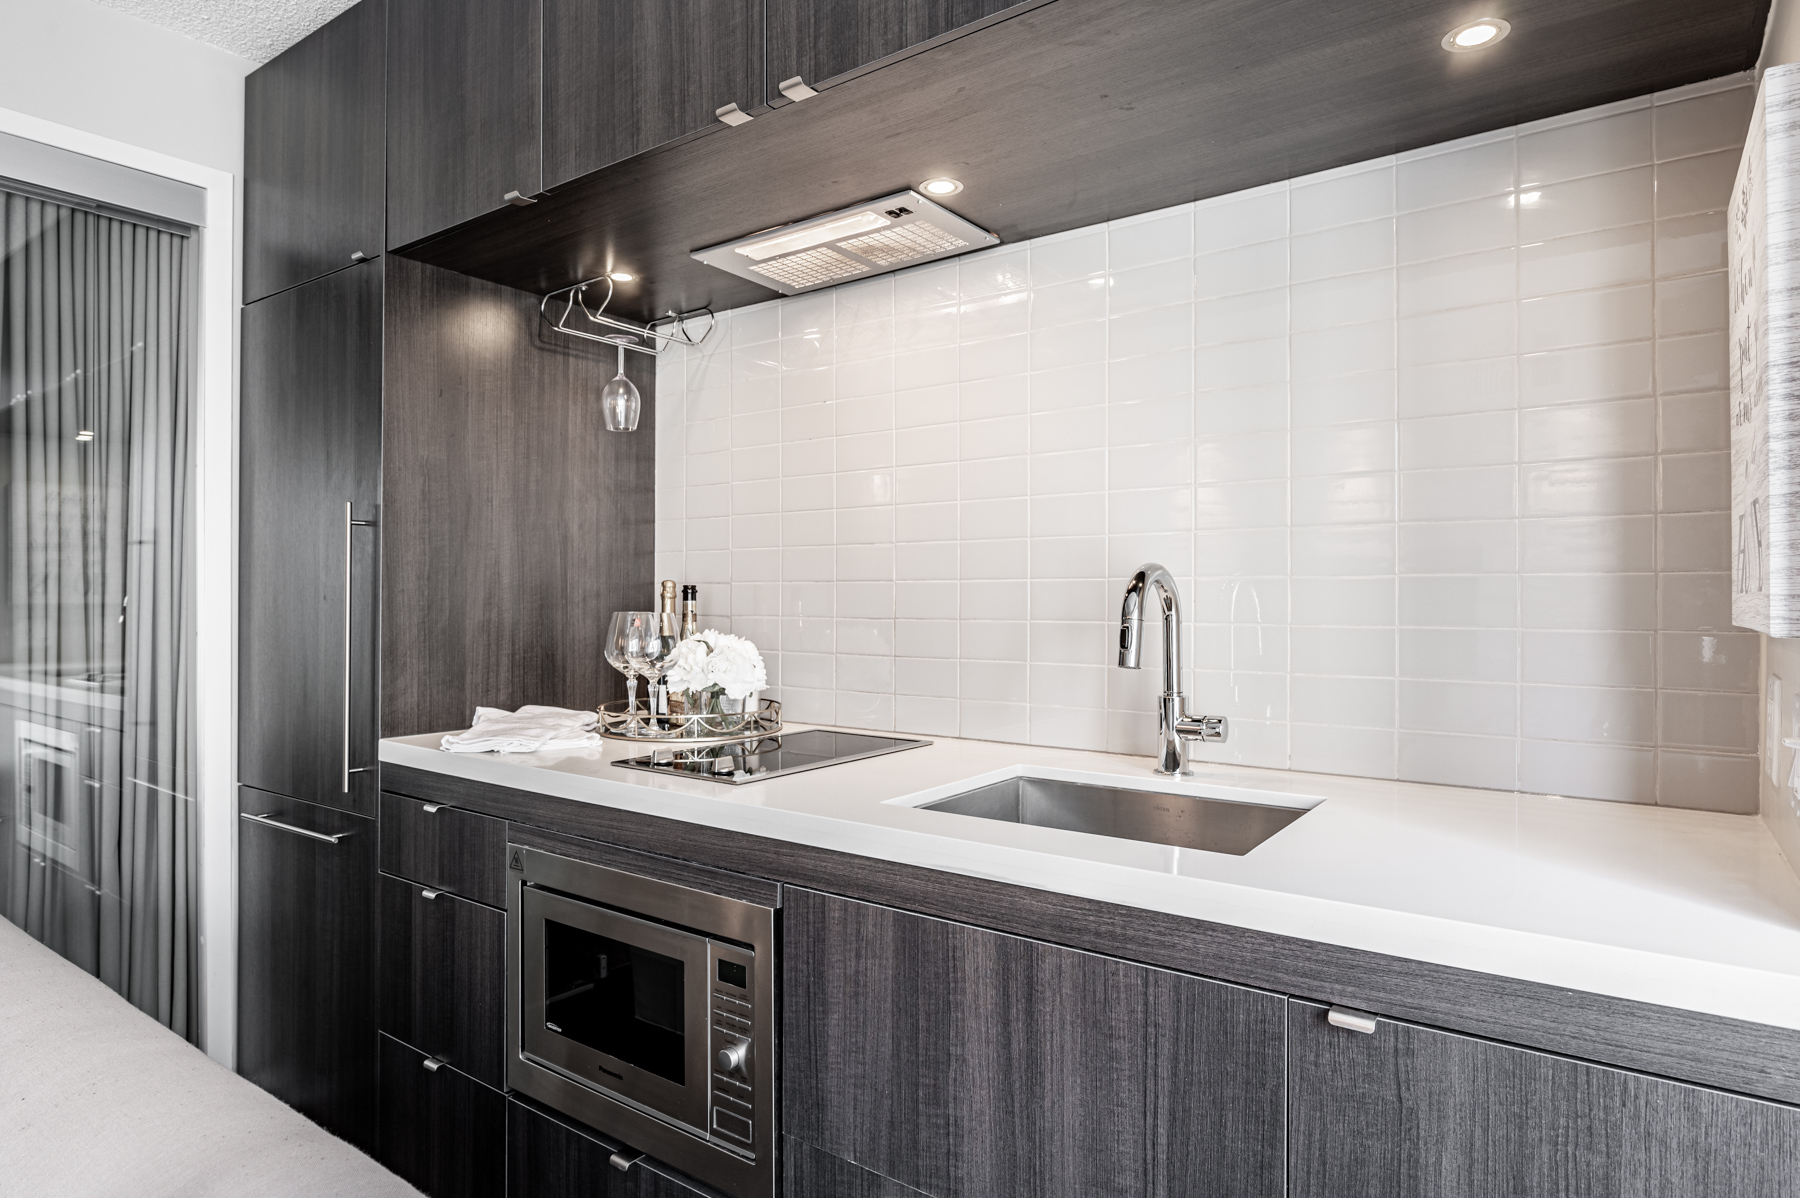 Kitchen with recessed lighting and wine glass rack.